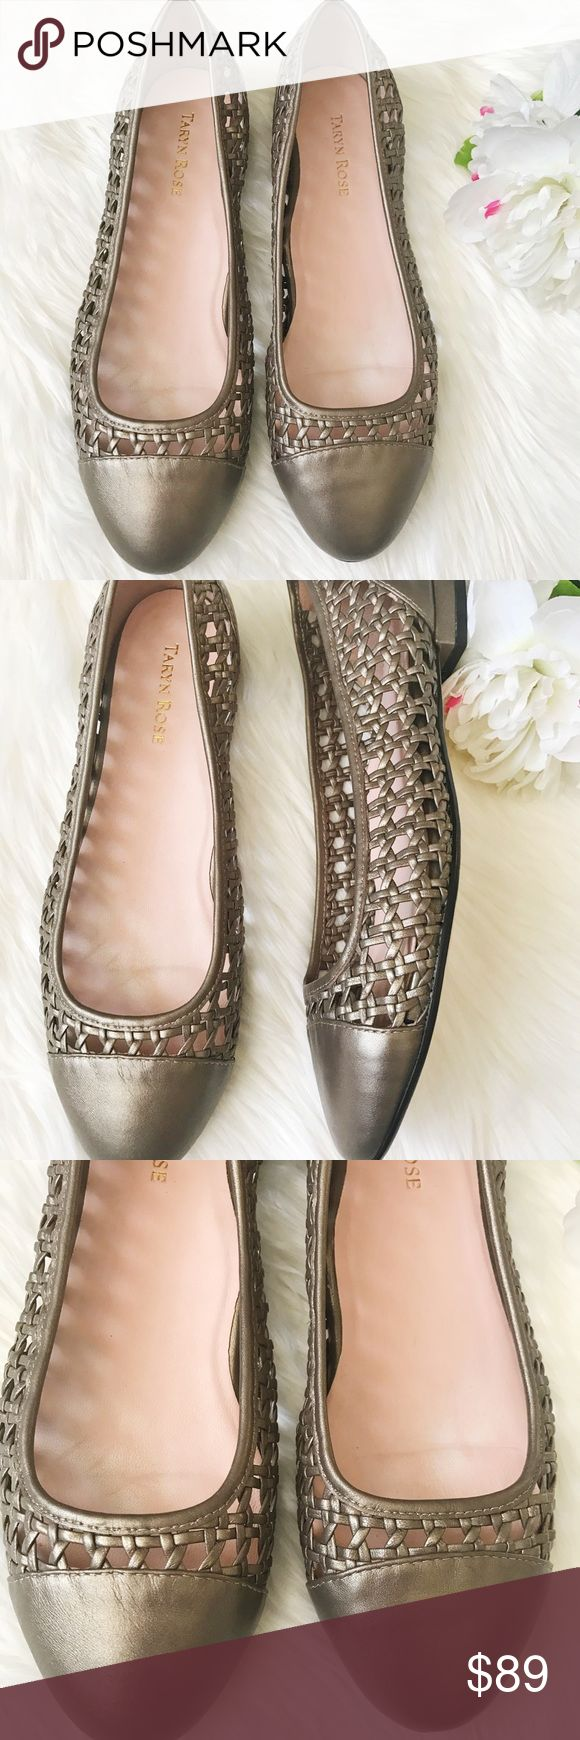 Taryn Rose Beatriz Woven Flats Taryn Rose Beatriz Woven Cap-Toe Ballerina Flat // Metallic // Excellent condition hardly worn // Size 9.5 M // Taryn Rose Shoes Flats & Loafers